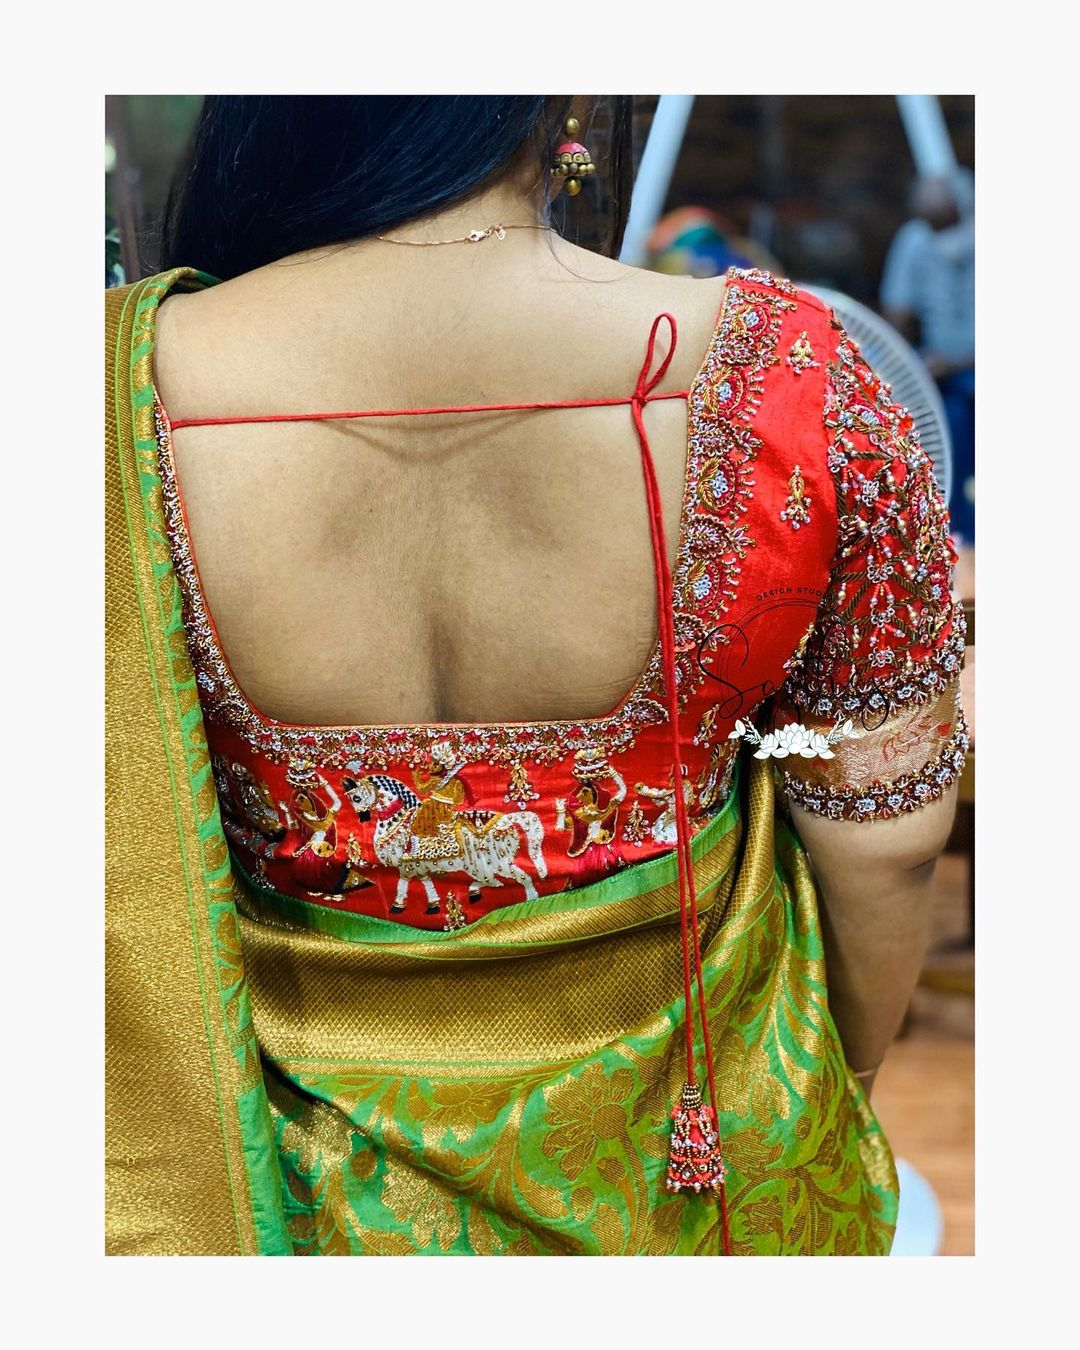 Stunning red color bridal blouse design with bead and stone aari work on back. 2021-05-11